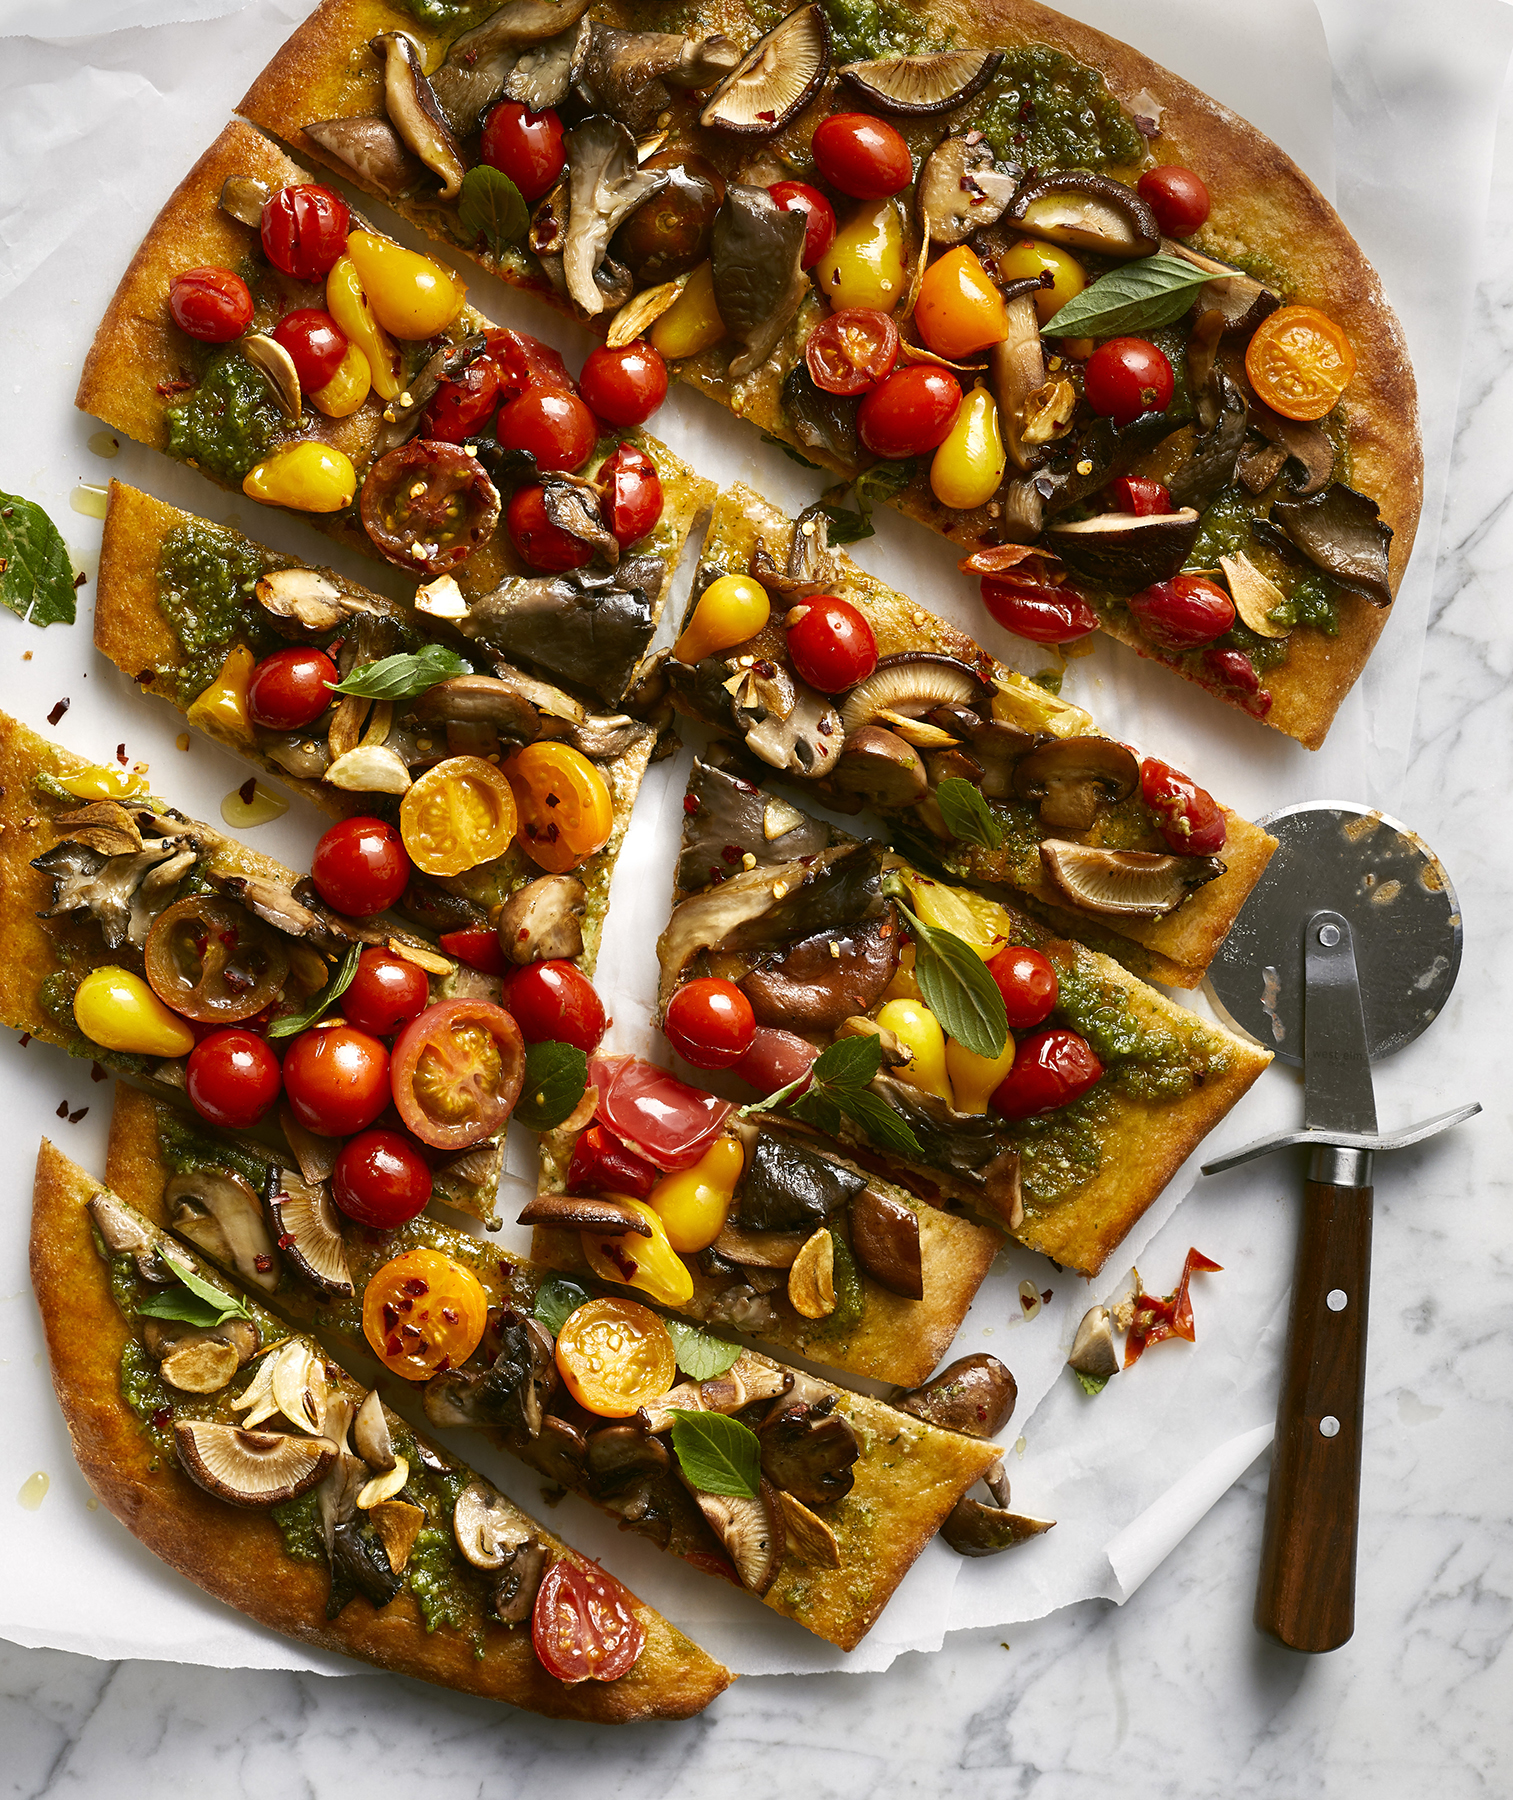 Miso-Pesto Flatbread With Mushrooms and Tomatoes